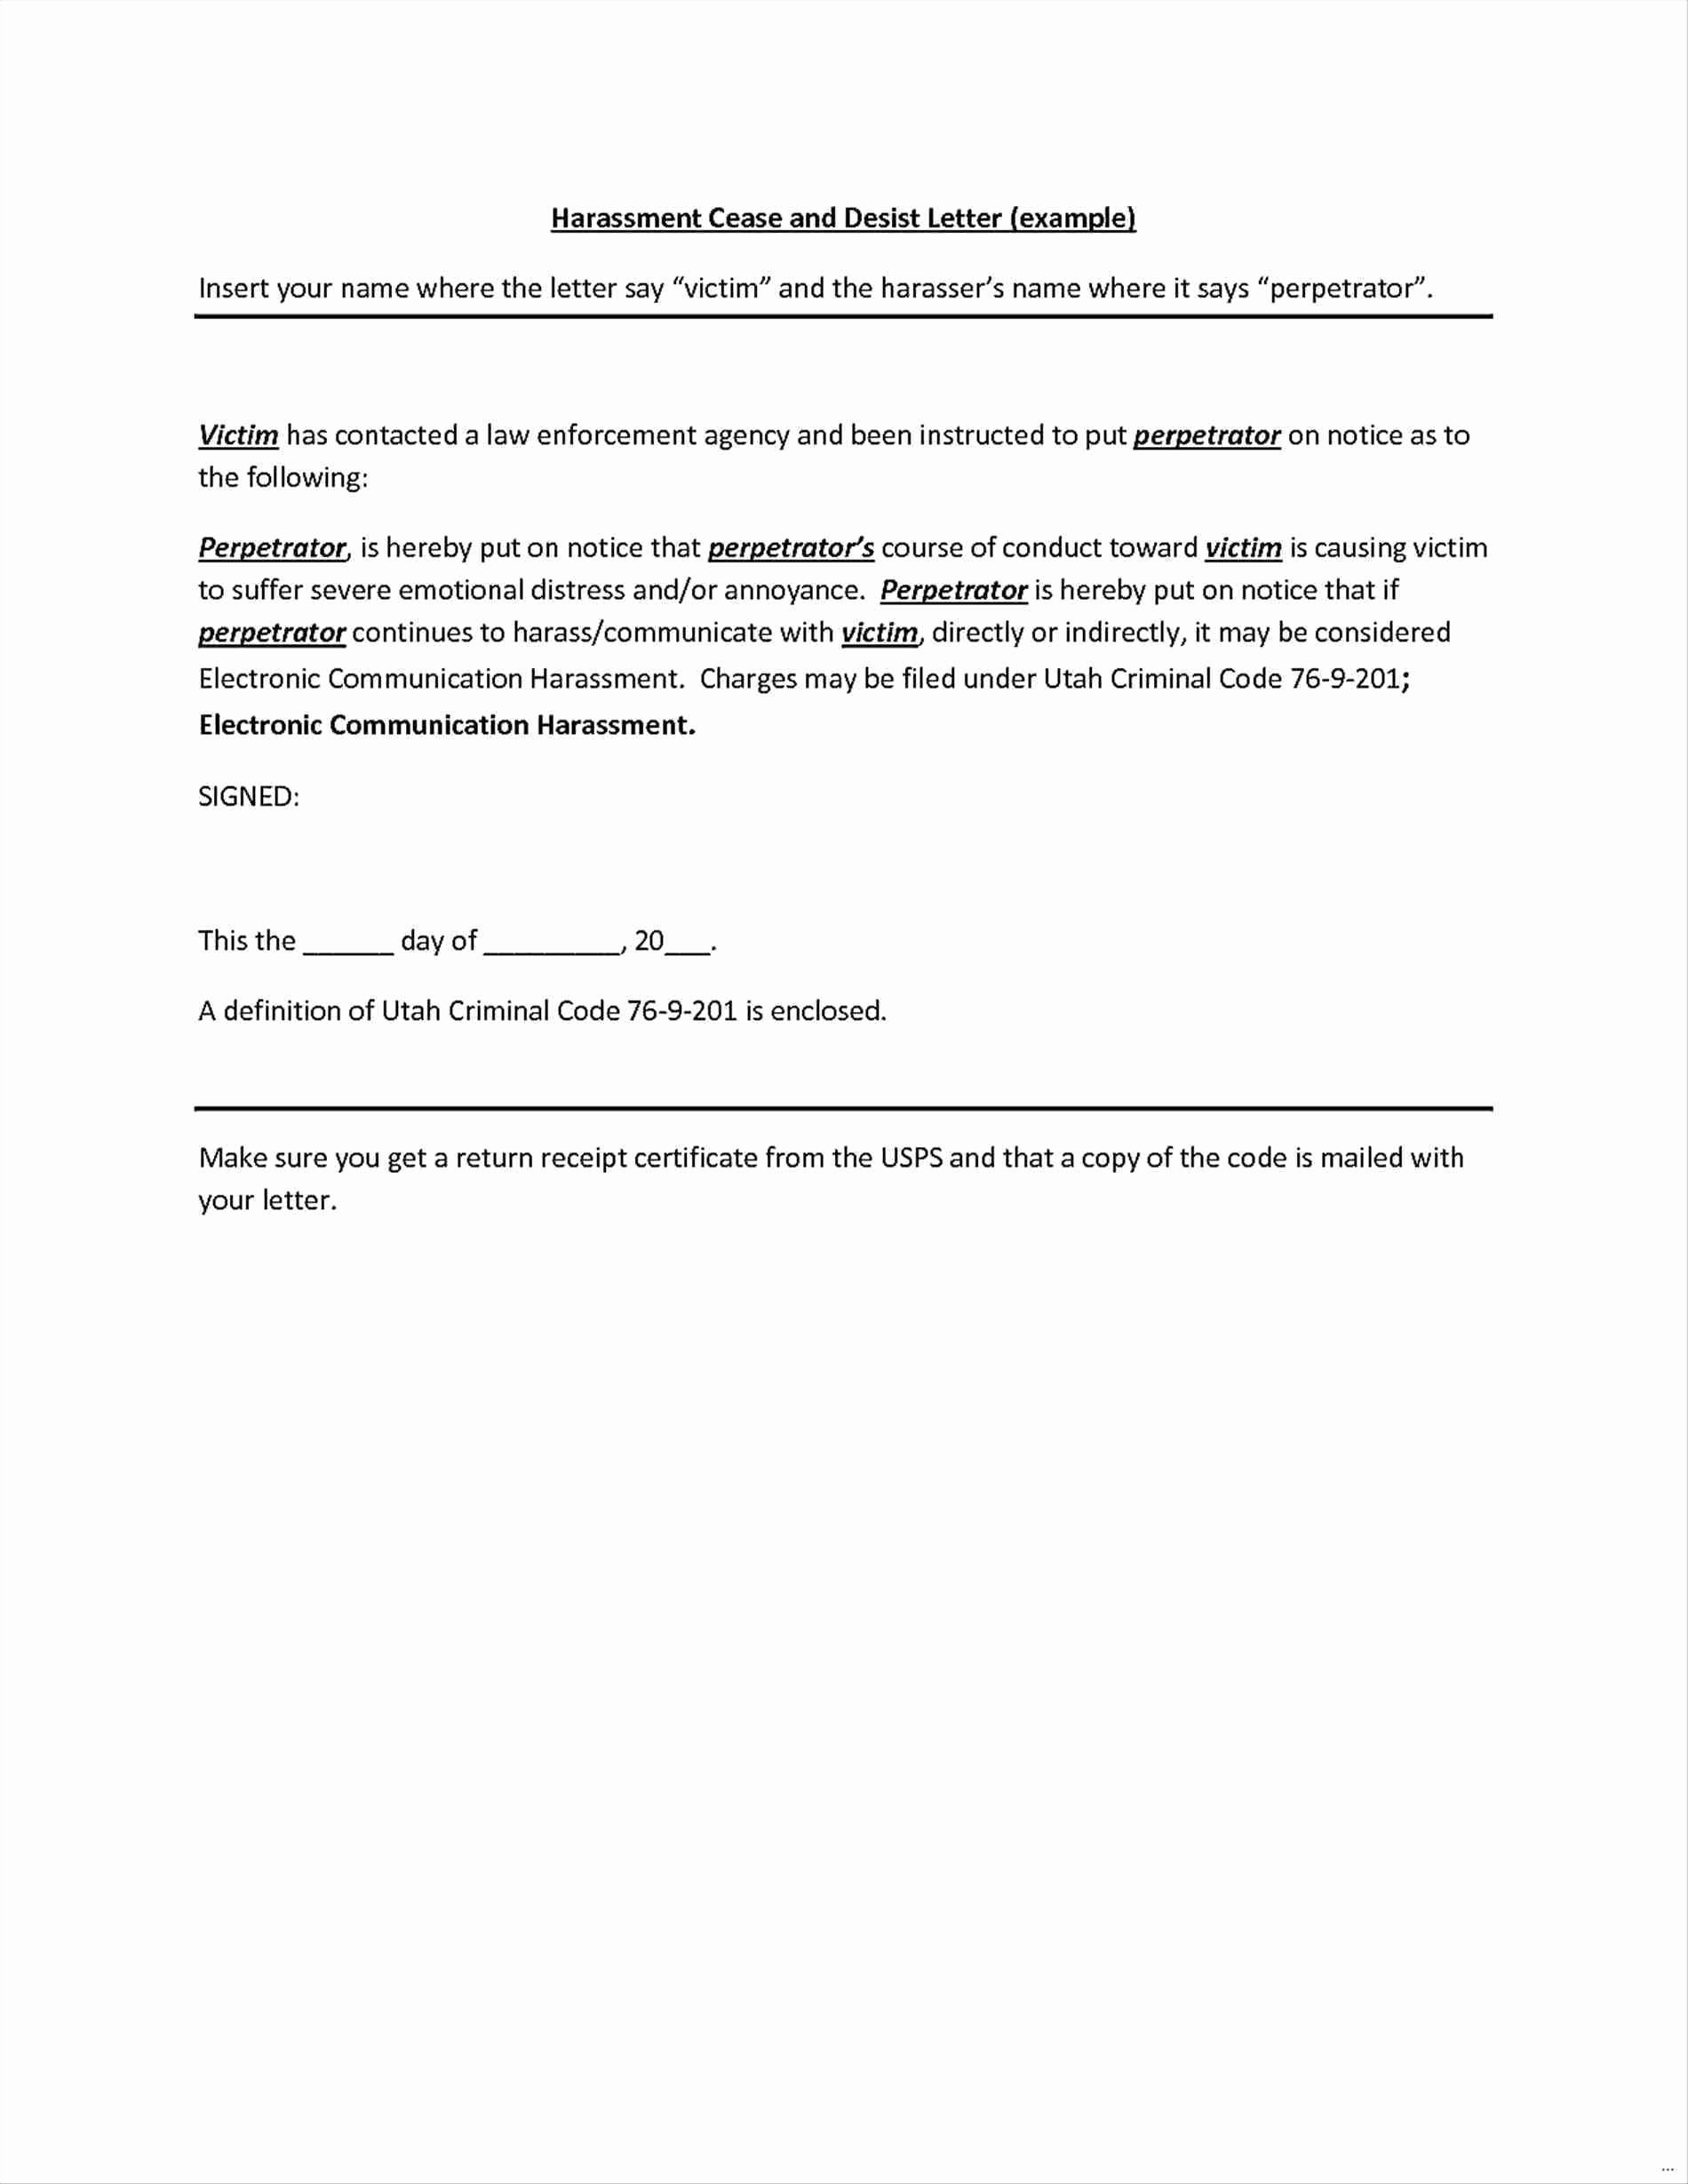 How to Write A Defamation Of Character Letter Beautiful Free Cease and Desist Letter Template for Harassment Sample